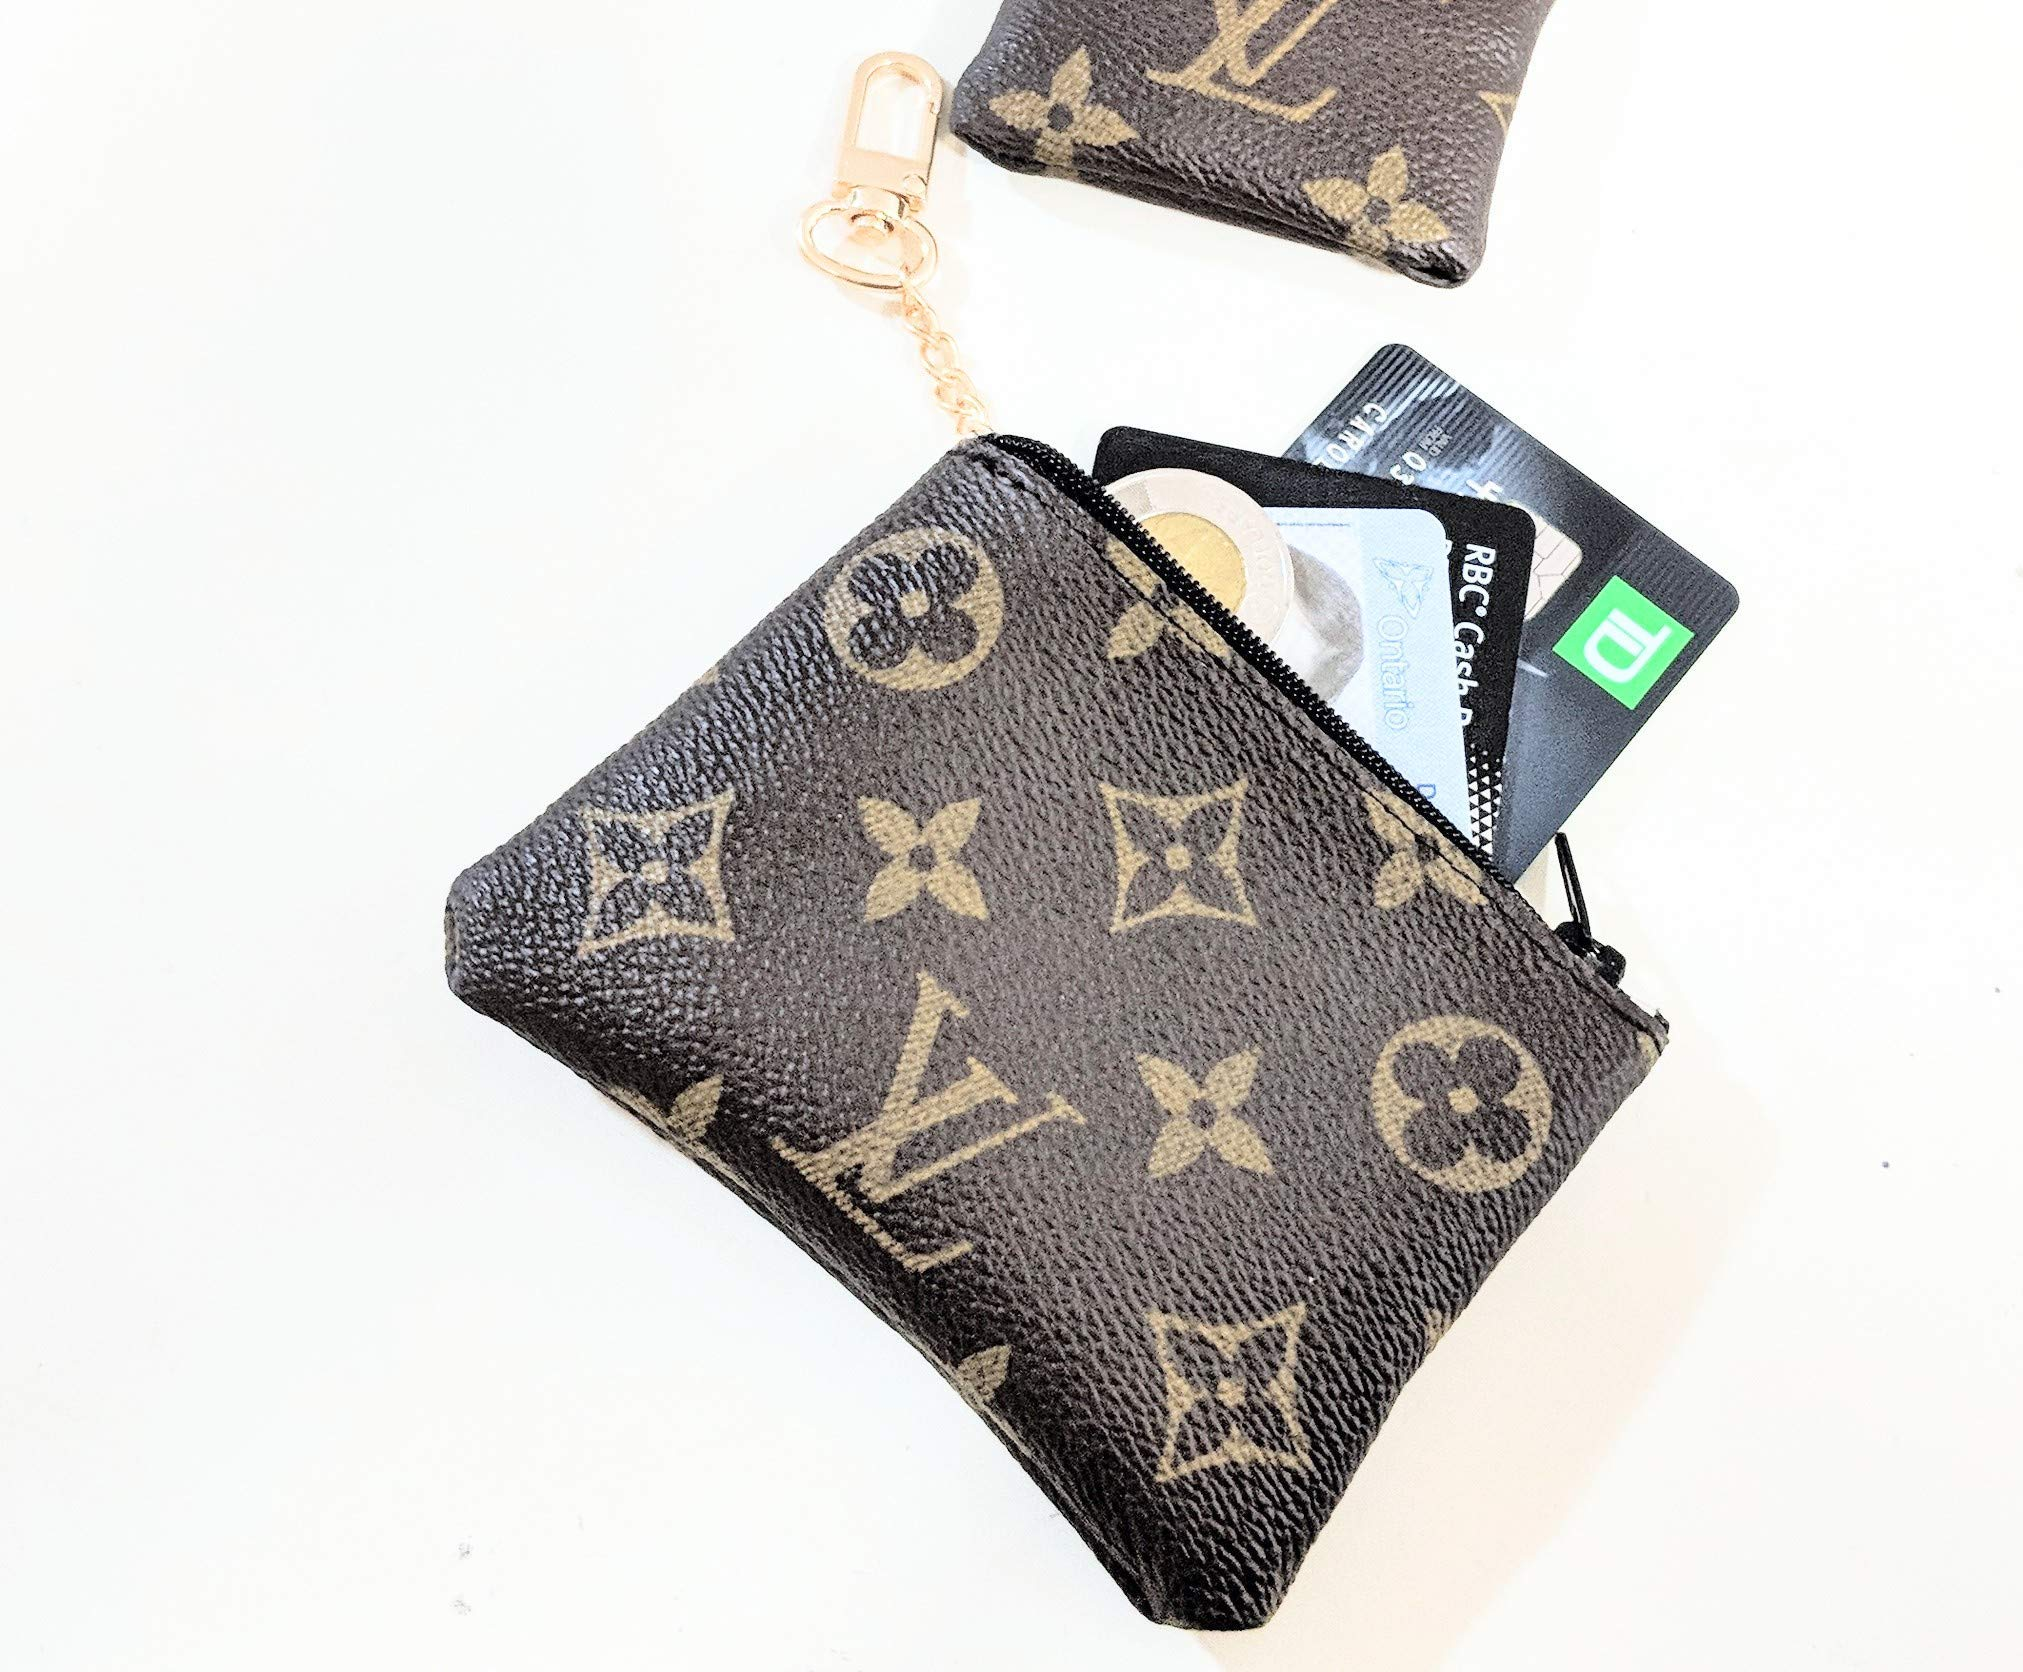 Handcrafted upcycled and repurposed into coin purse from old authentic LV bag canvas-please read item description before you make your purchase